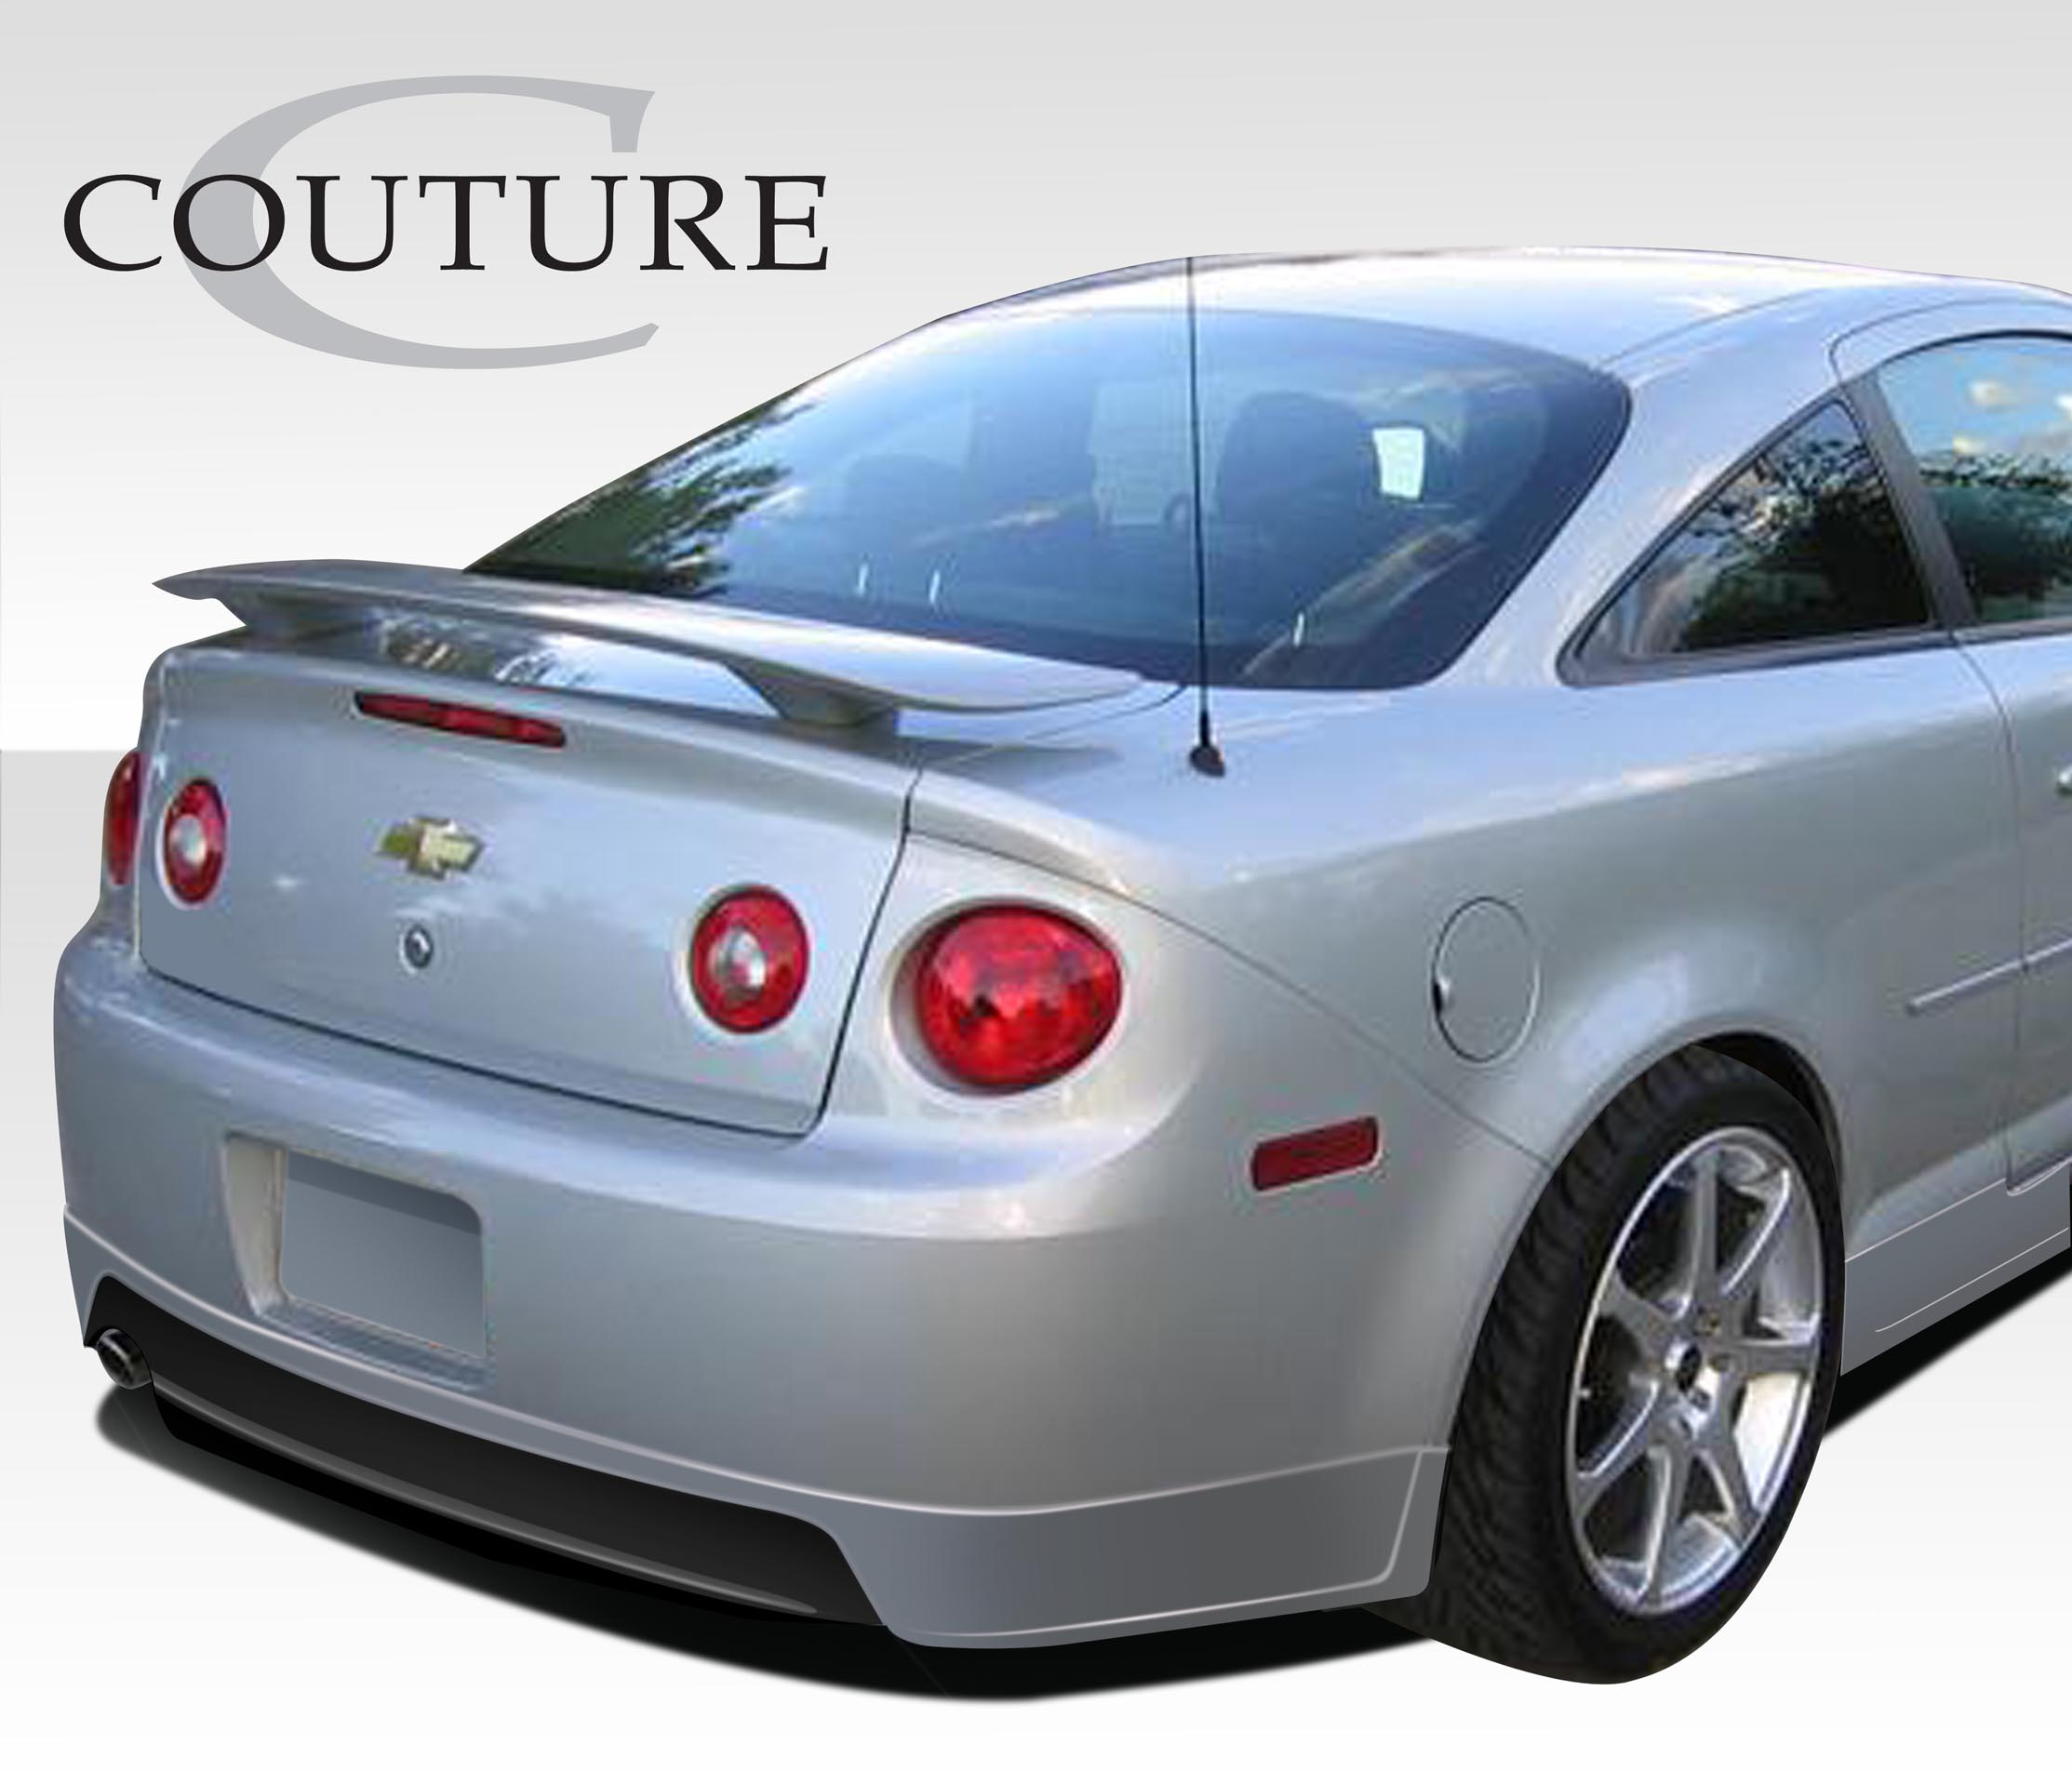 2005 Chevrolet Cobalt 2DR - Polyurethane Rear Lip/Add On Bodykit - 2005-2010 Chevrolet Cobalt 2DR Couture Vortex Rear Lip Under Spoiler Air Dam (base